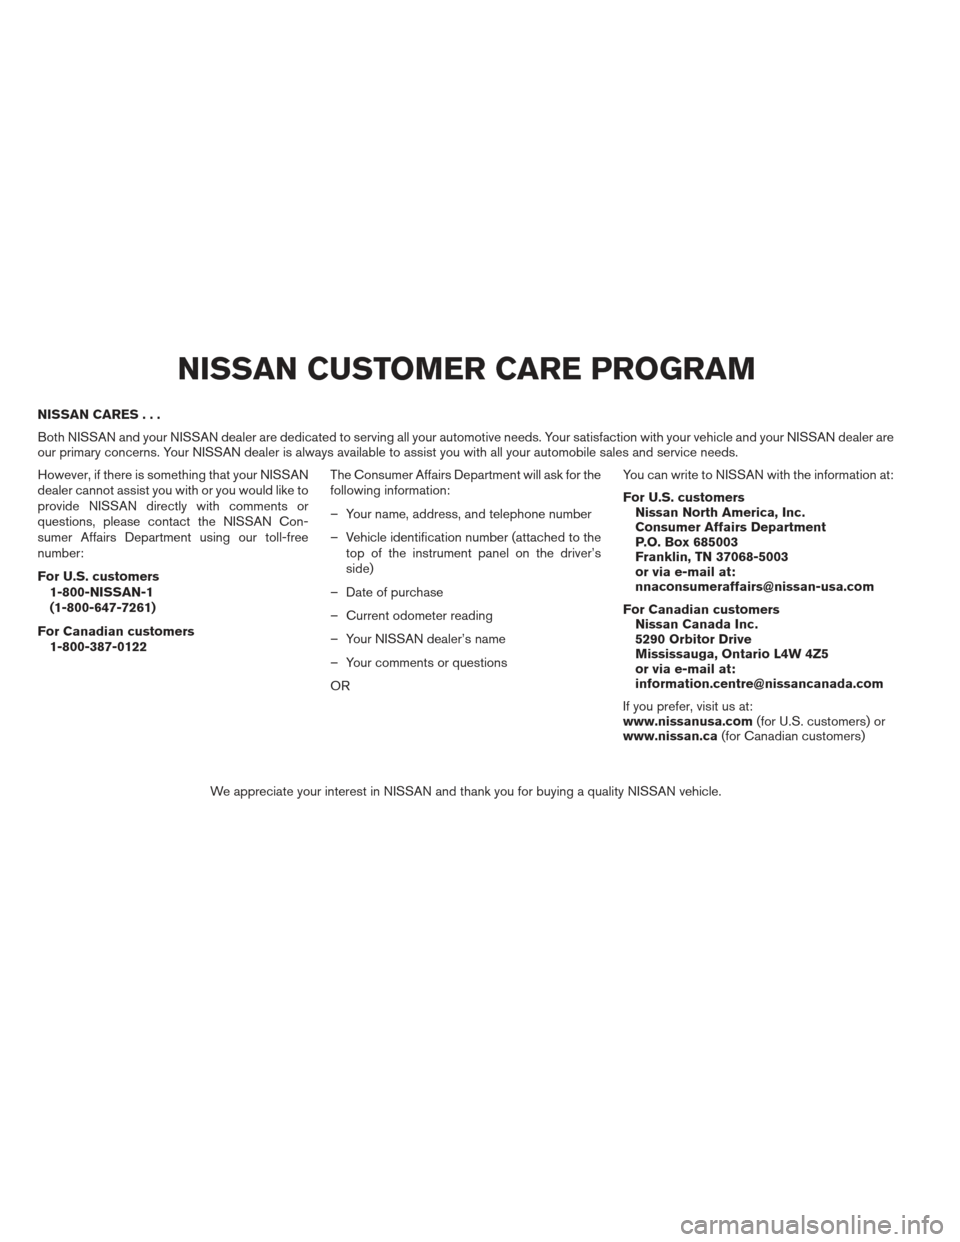 NISSAN ALTIMA 2013 L33 / 5.G Owners Manual NISSAN CARES... Both NISSAN and your NISSAN dealer are dedicated to serving all your automotive needs. Your satisfaction with your vehicle and your NISSAN dealer are our primary concerns. Your NISSAN